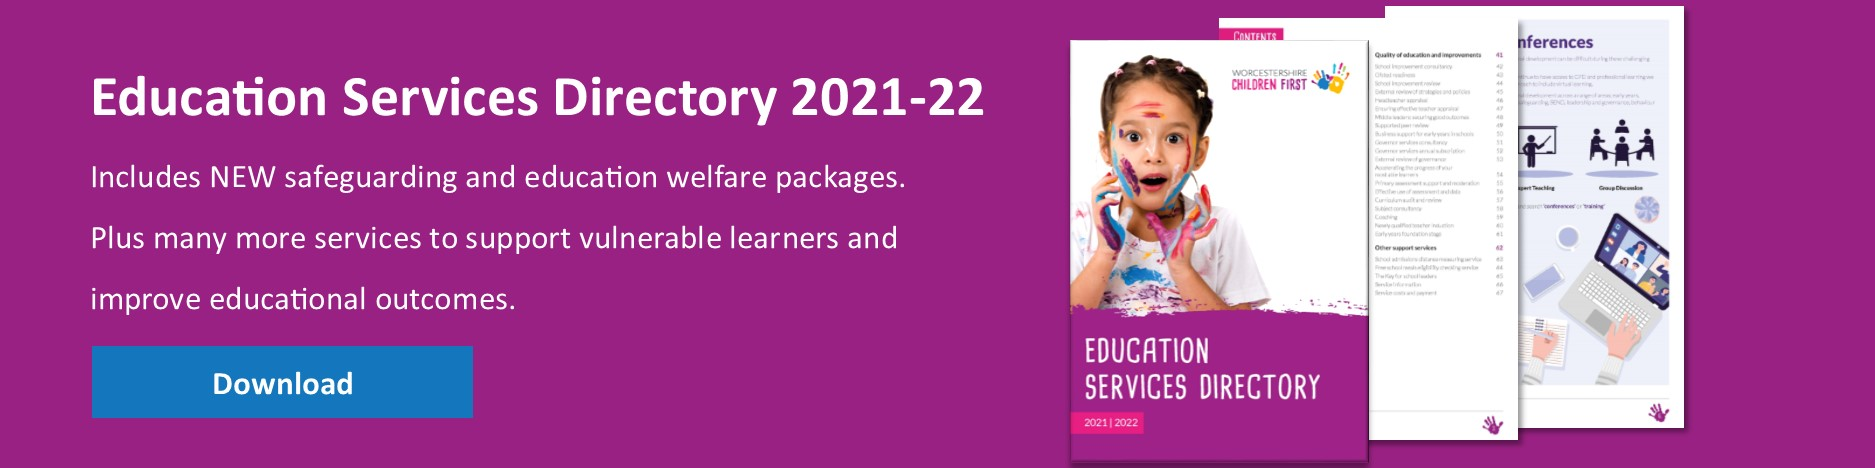 Education Services Directory 2021 to 2022